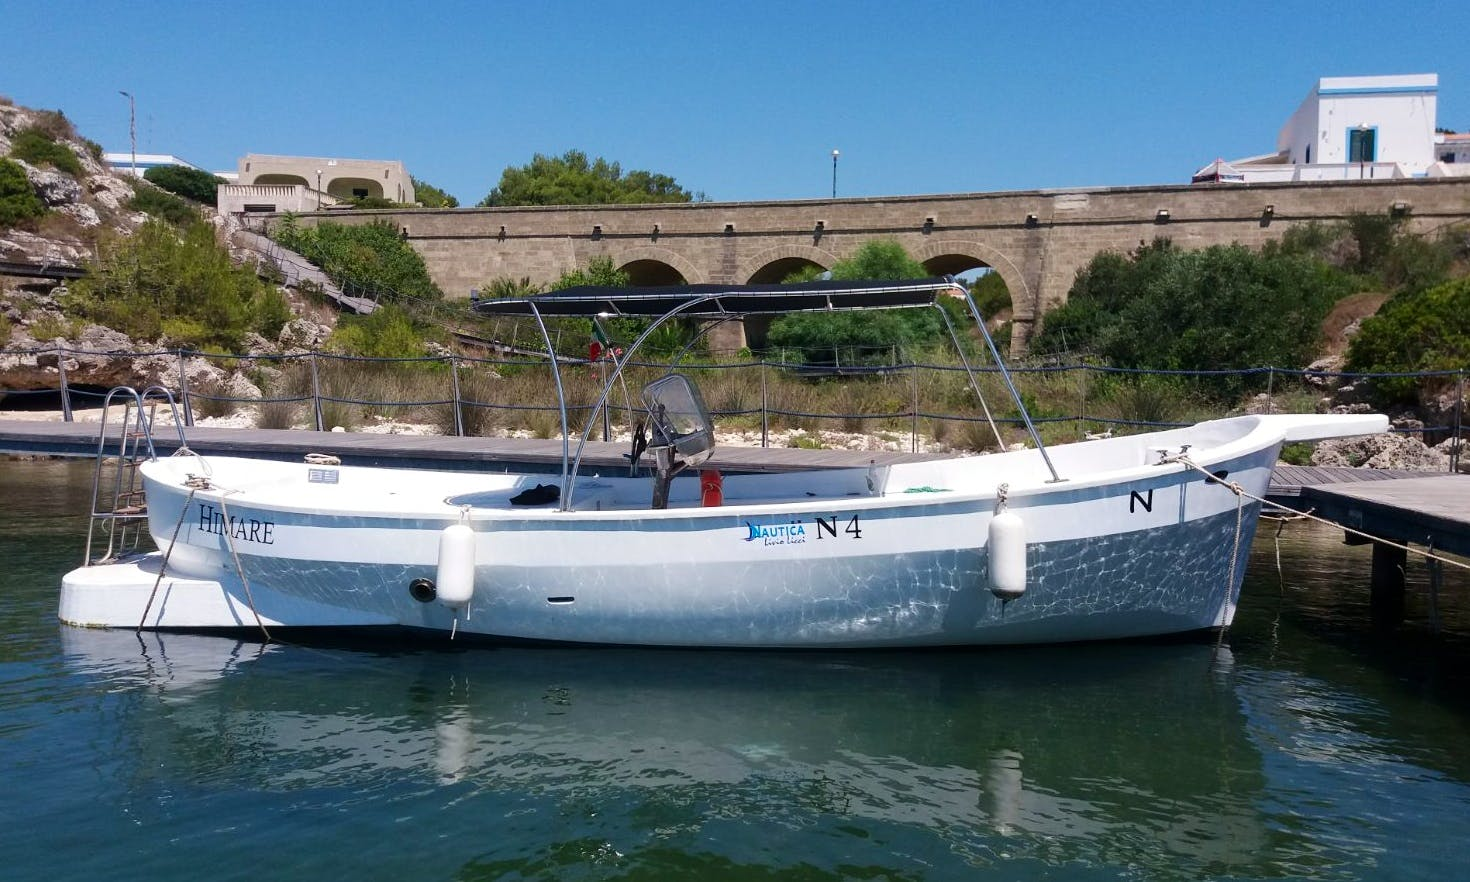 Journey out and explore Leuca's caves by boat